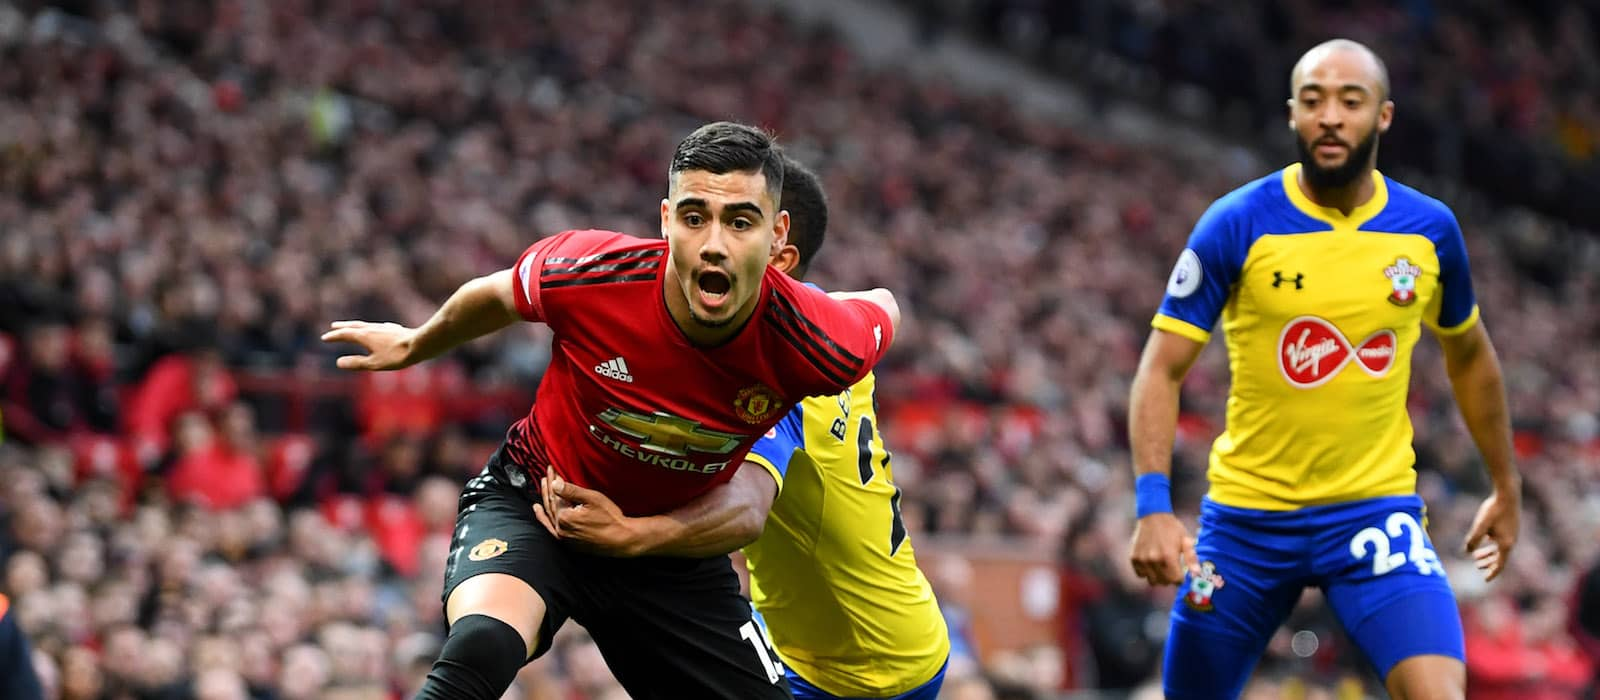 Ole Gunnar Solskjaer: I'm so happy for Andreas Pereira